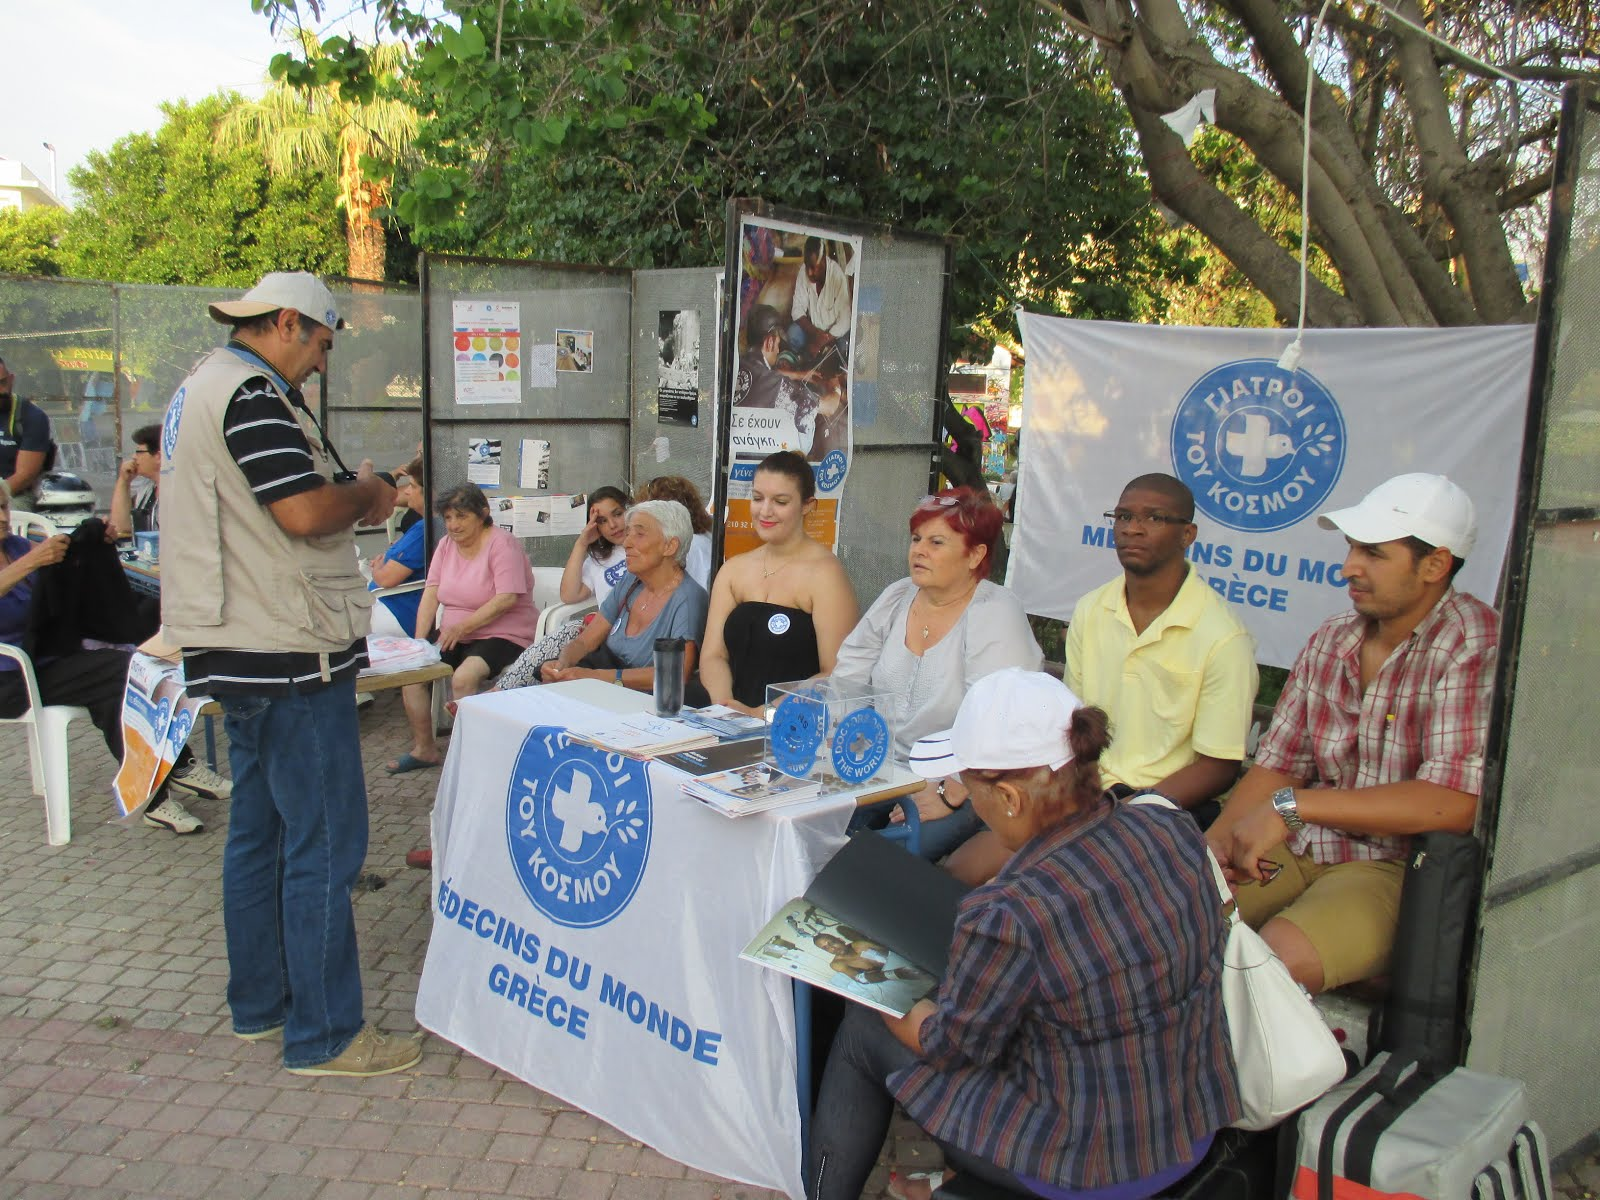 Doctors of the World at the Anti-Racist Festival, Chania, Crete, June 2015